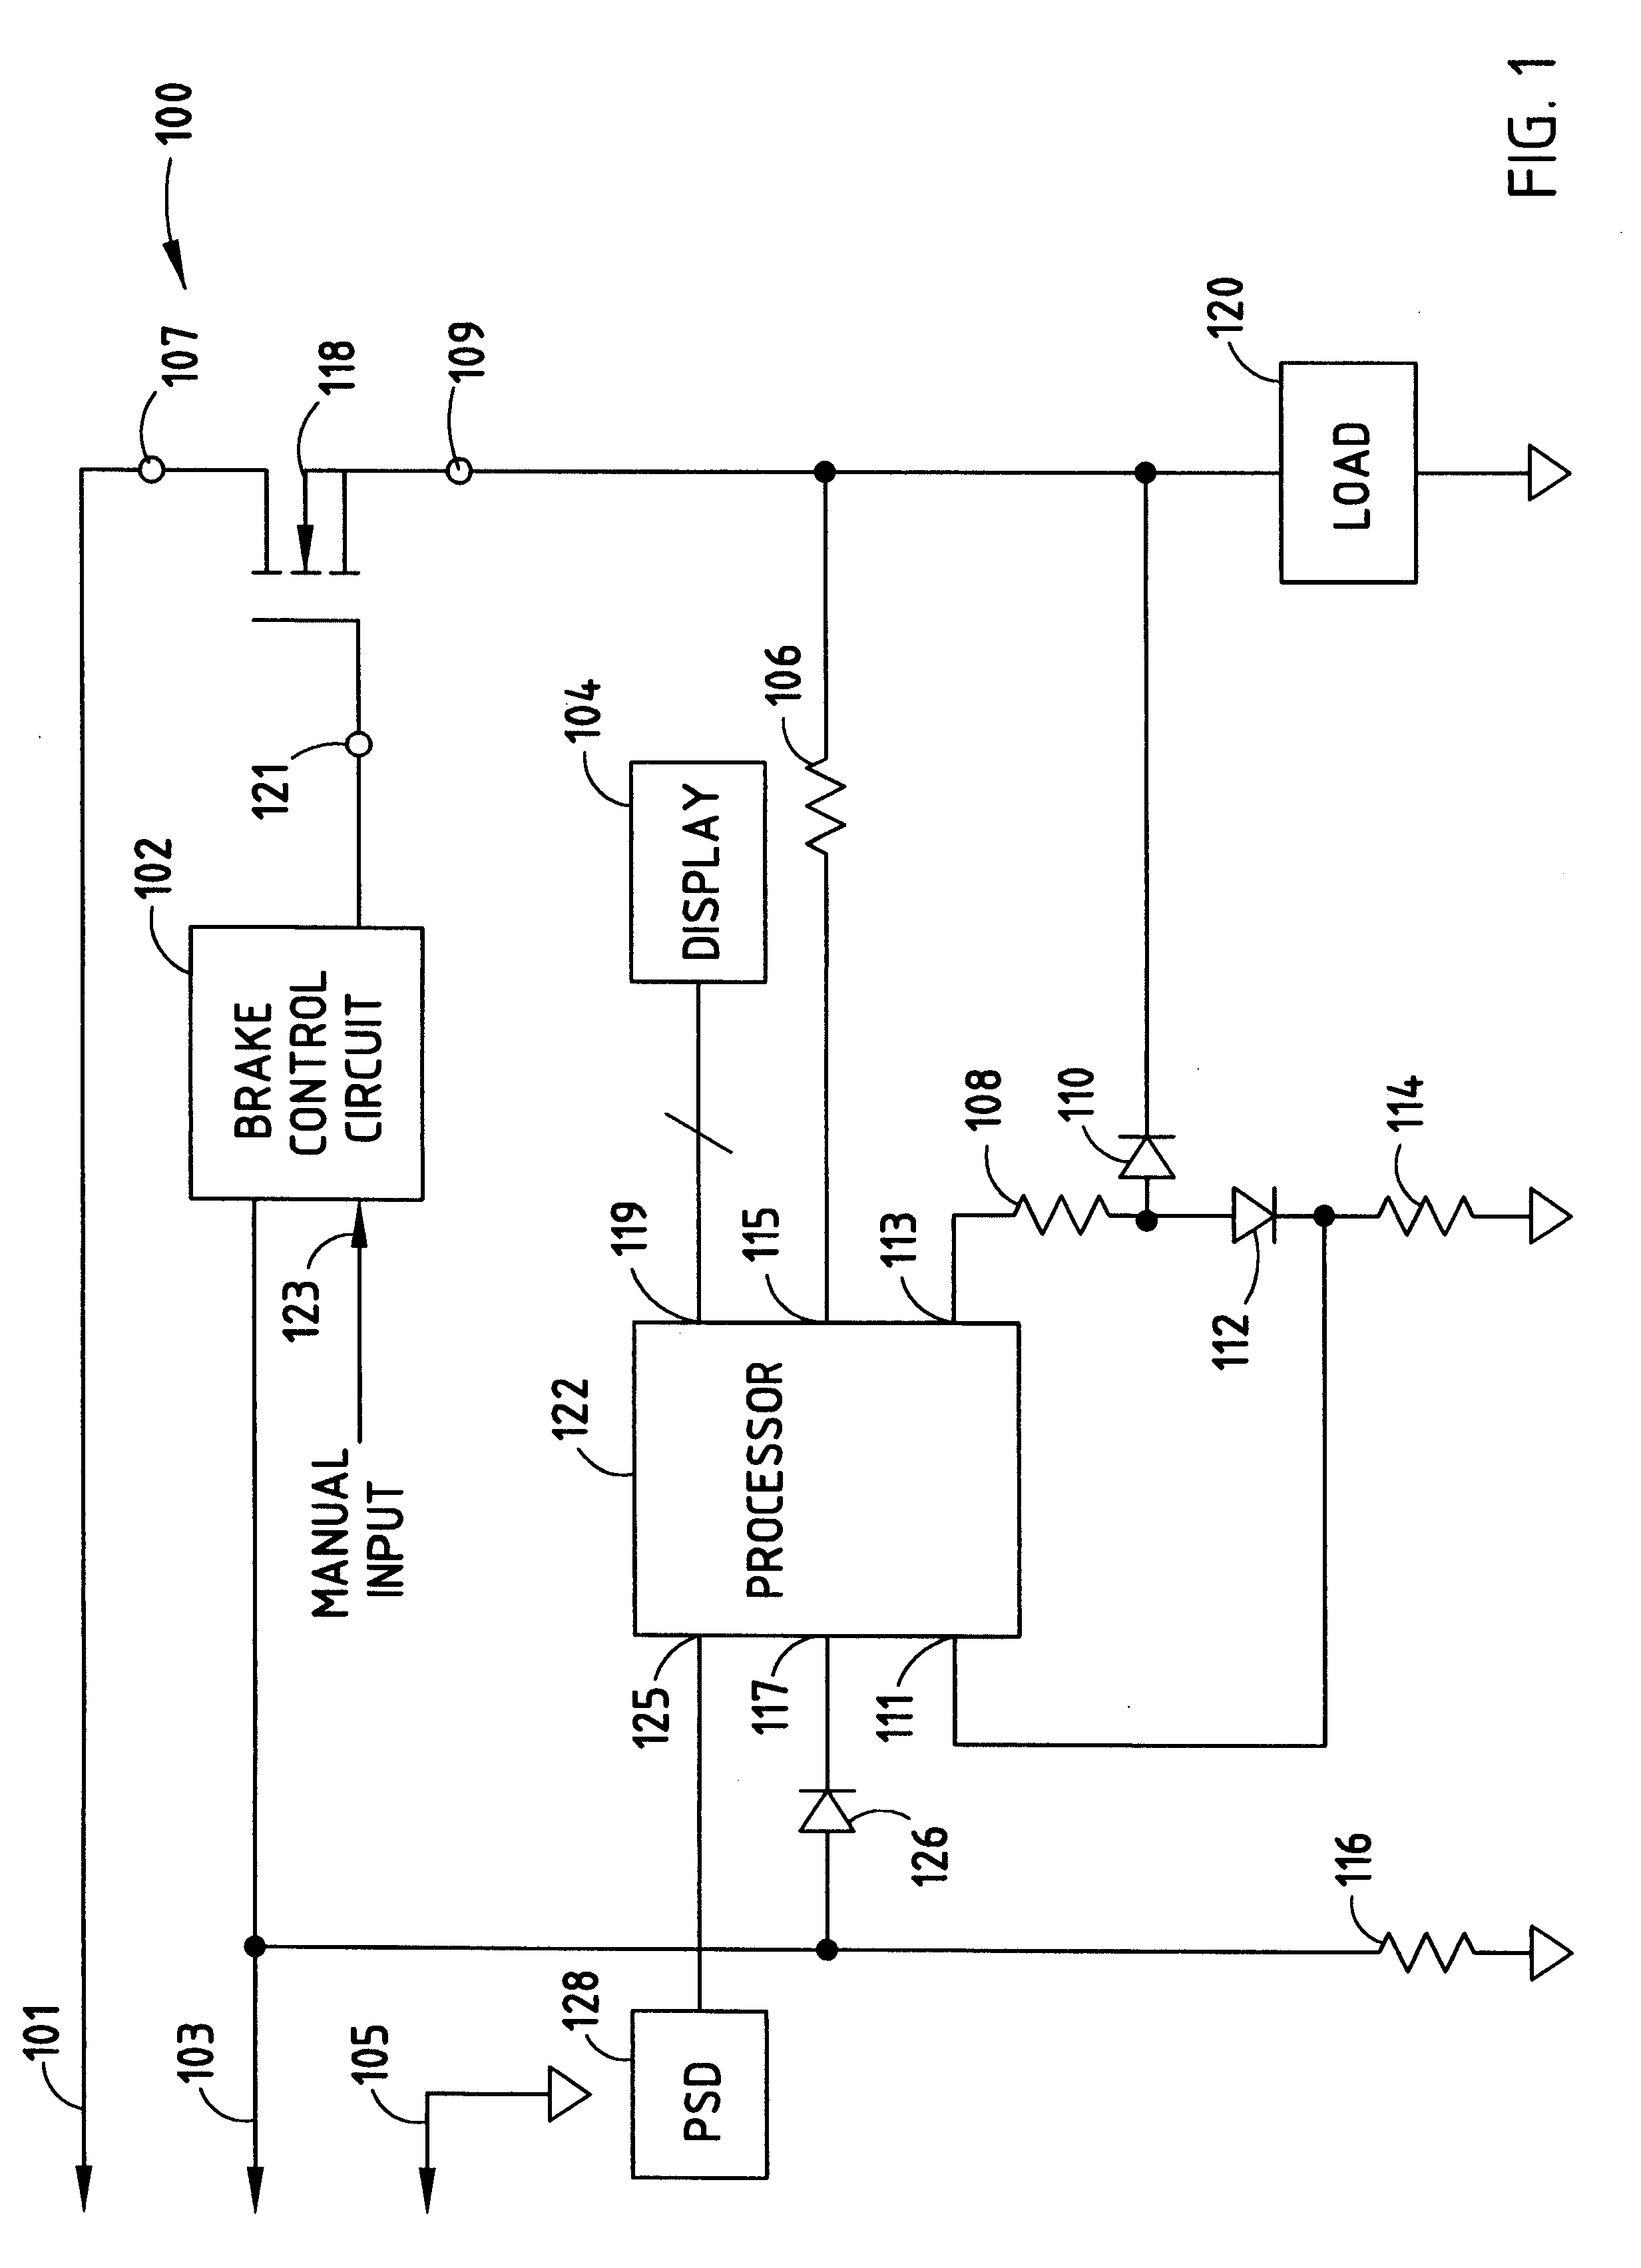 Wiring Diagram For Tekonsha Brake Controller The Wiring